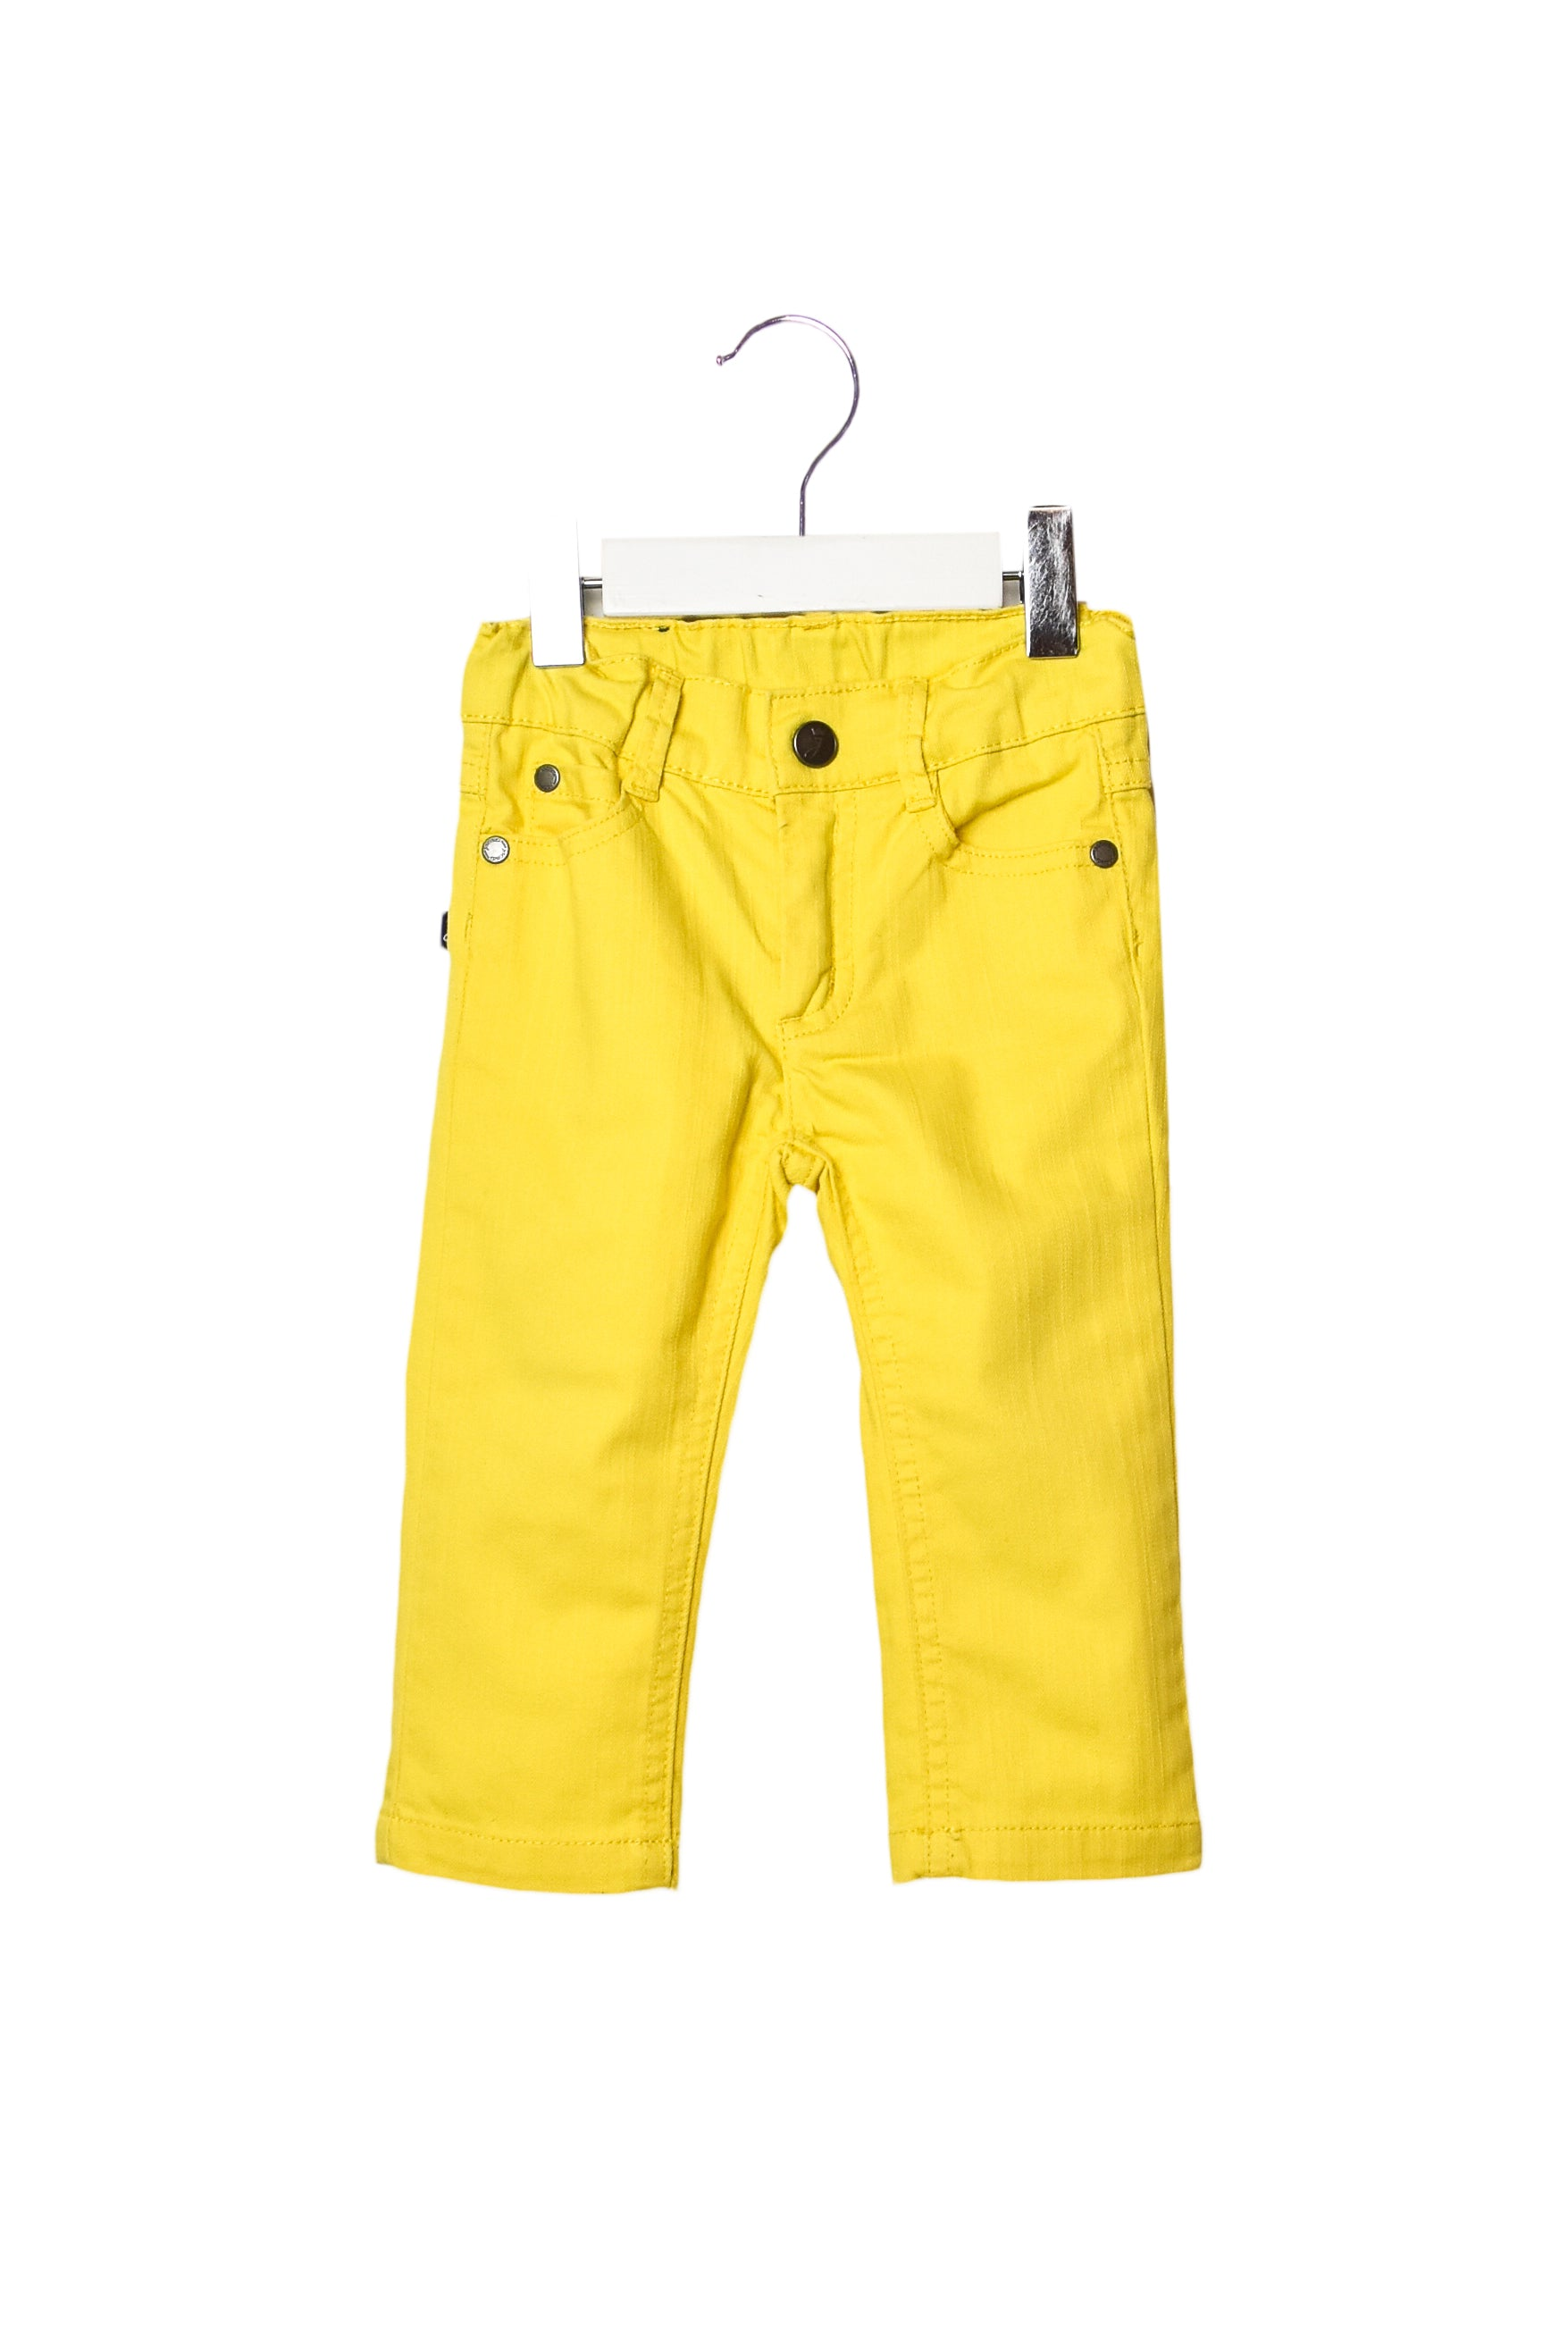 10008604 Jacadi Baby~Jeans 12M at Retykle